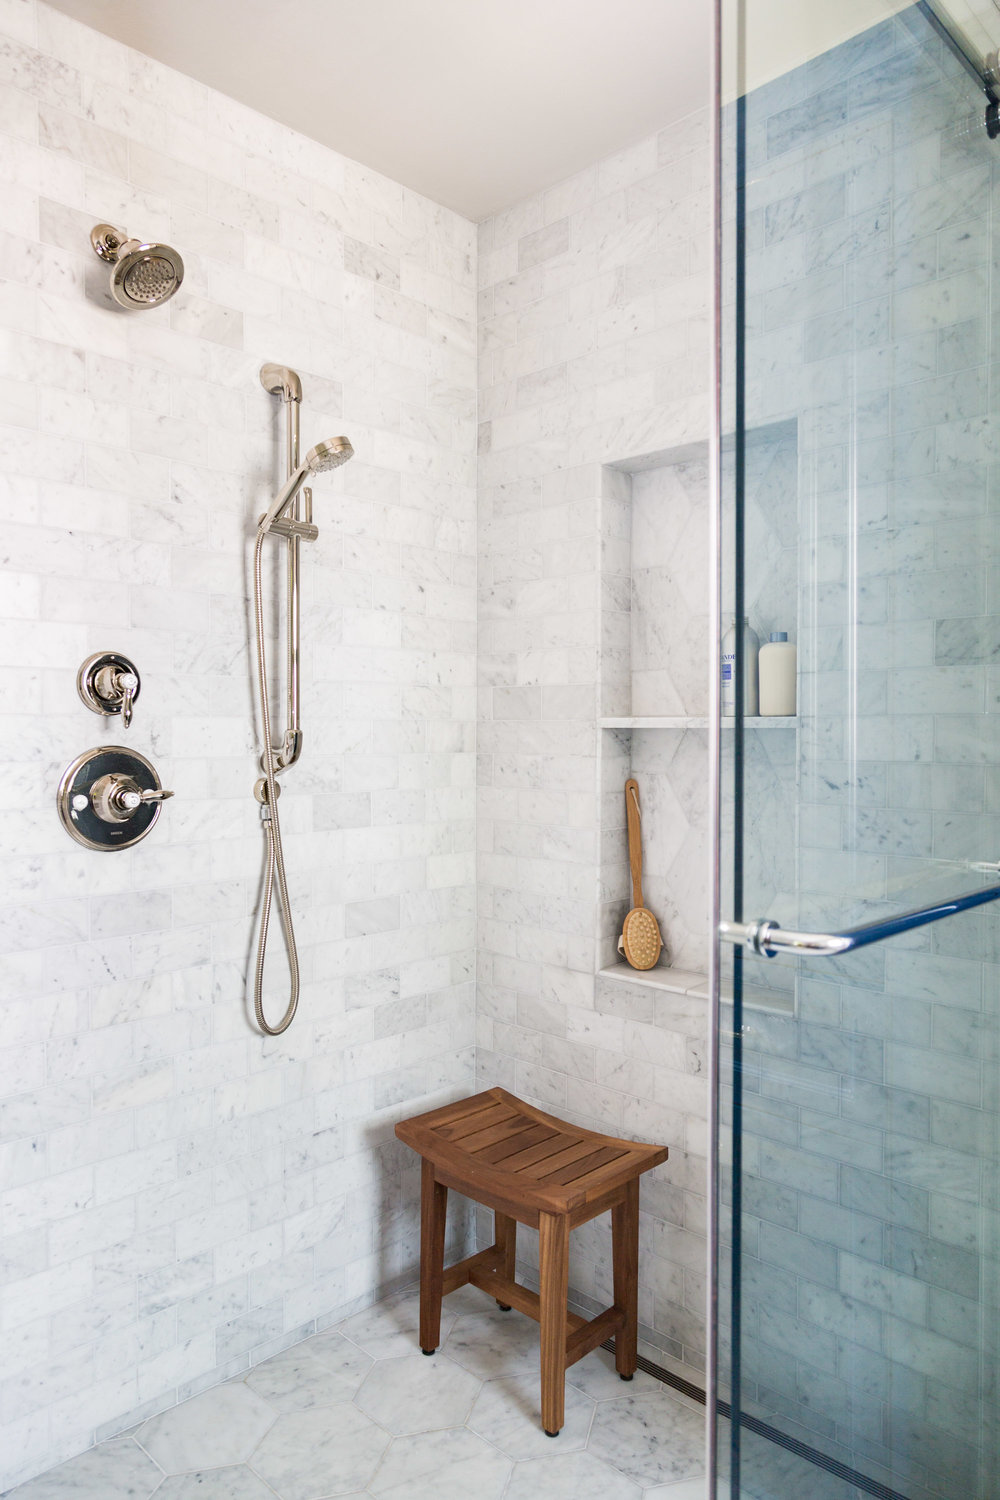 Carrara marble shampoo niche with linear drain in bathroom remodel | Carla Aston, Designer | Tori Aston, Photographer #bathroomremodel #marblebathroom #hextile